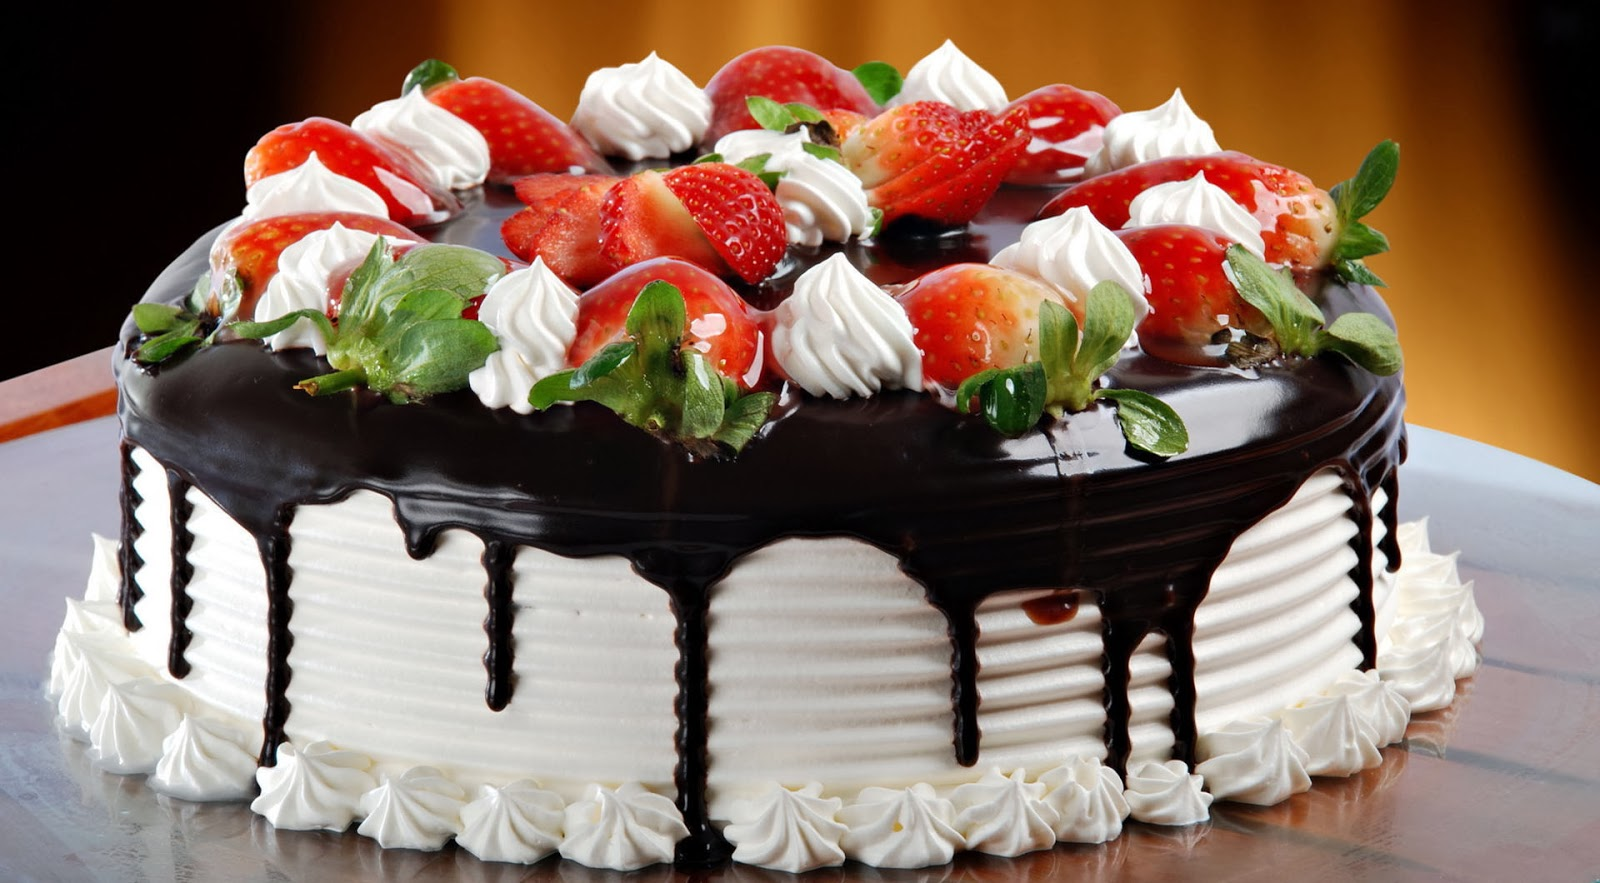 Cake Making Classes In Visakhapatnam : There is no Glory in the Foundations-Karl Terzaghi